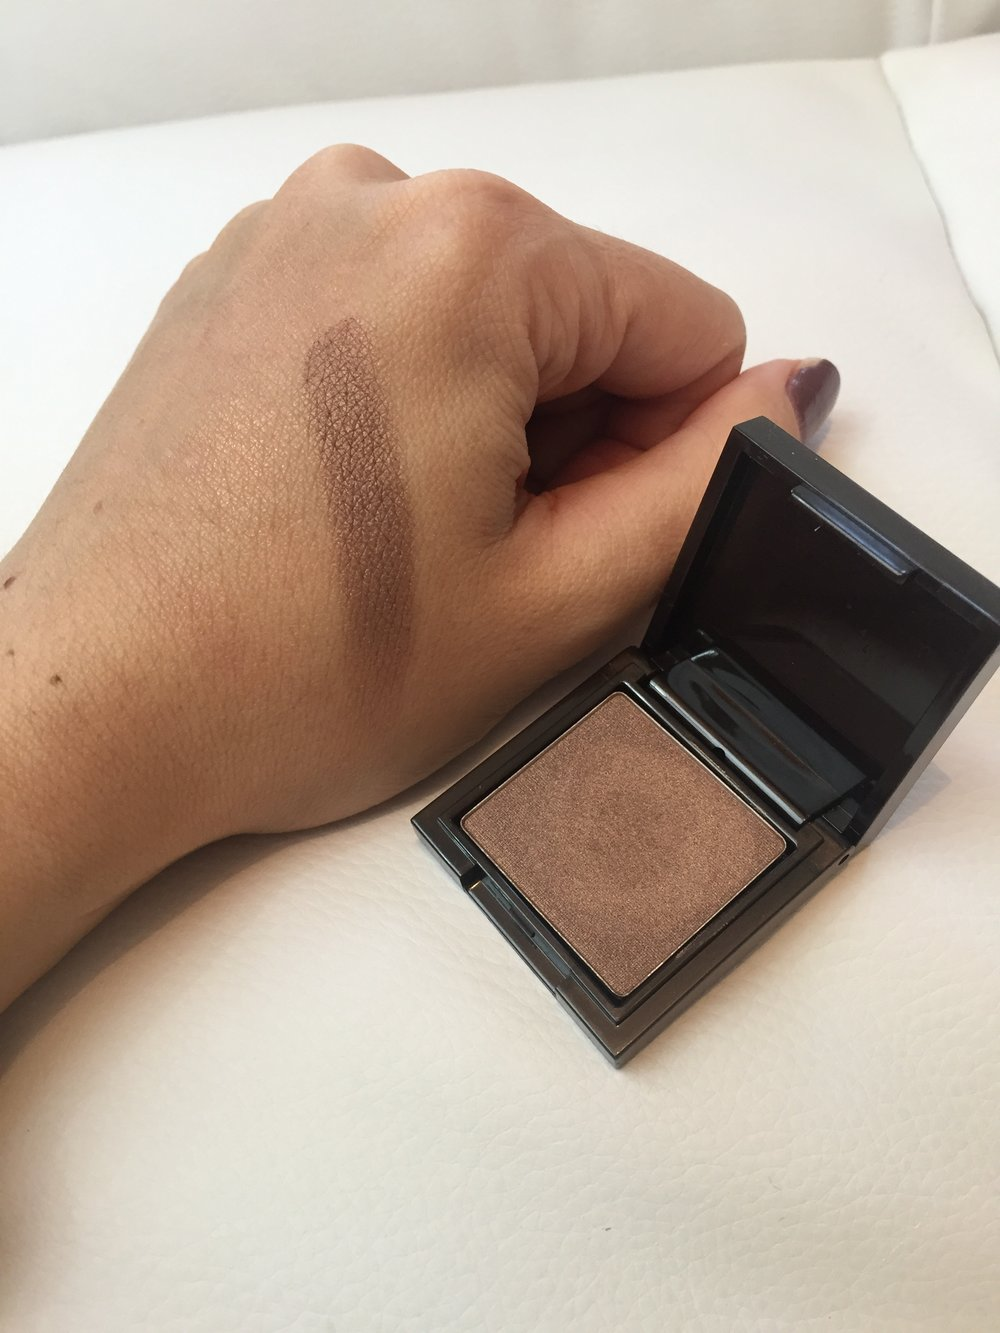 Korres Colour Sunflower & Primrose Eyeshadow in 31 Bronze Brown